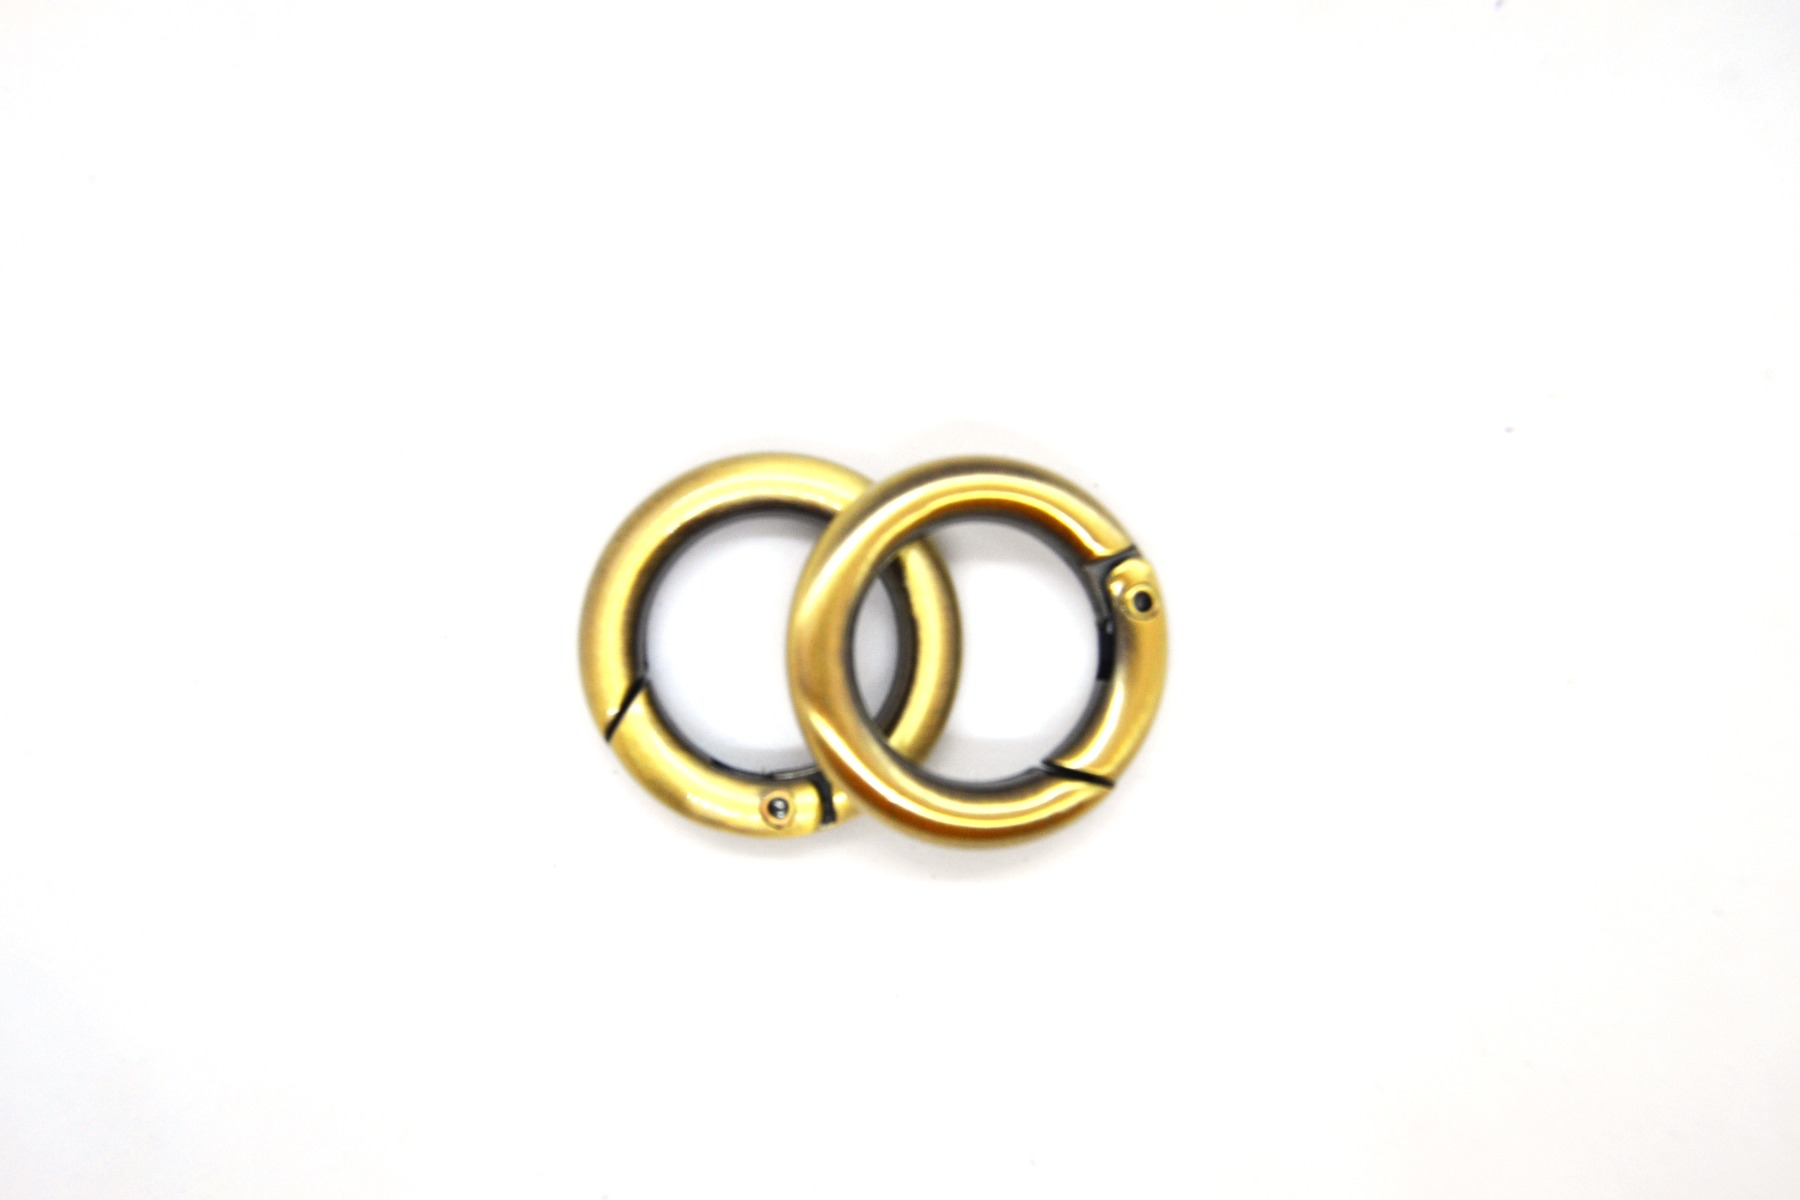 Replacement of Old Gold Rings